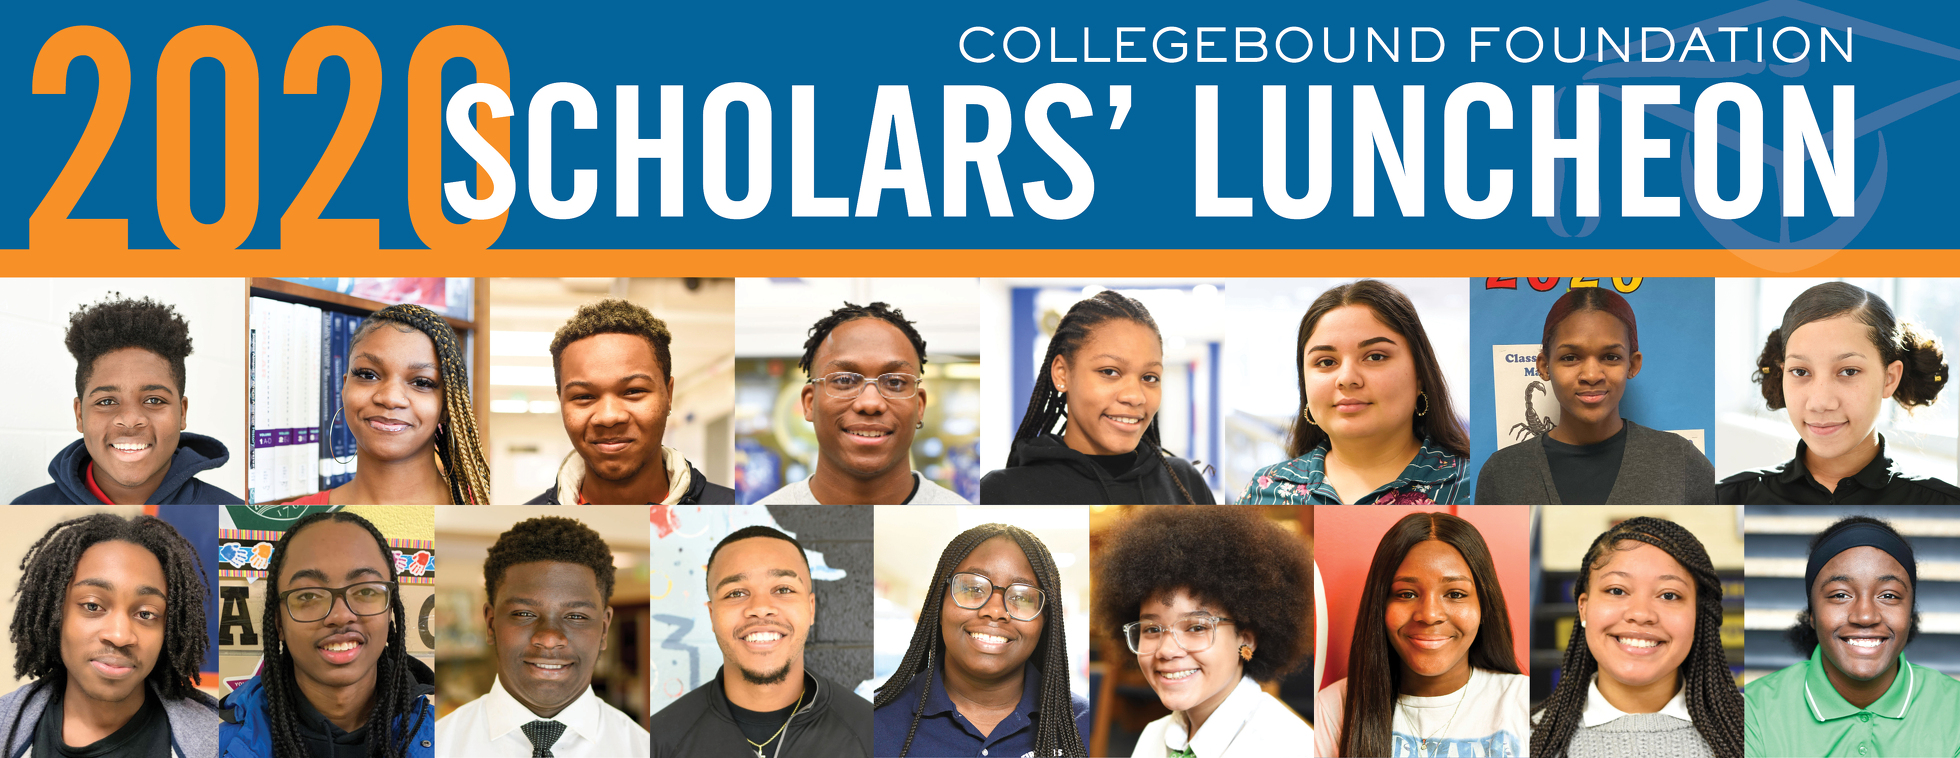 32nd Annual CollegeBound Scholars' Luncheon